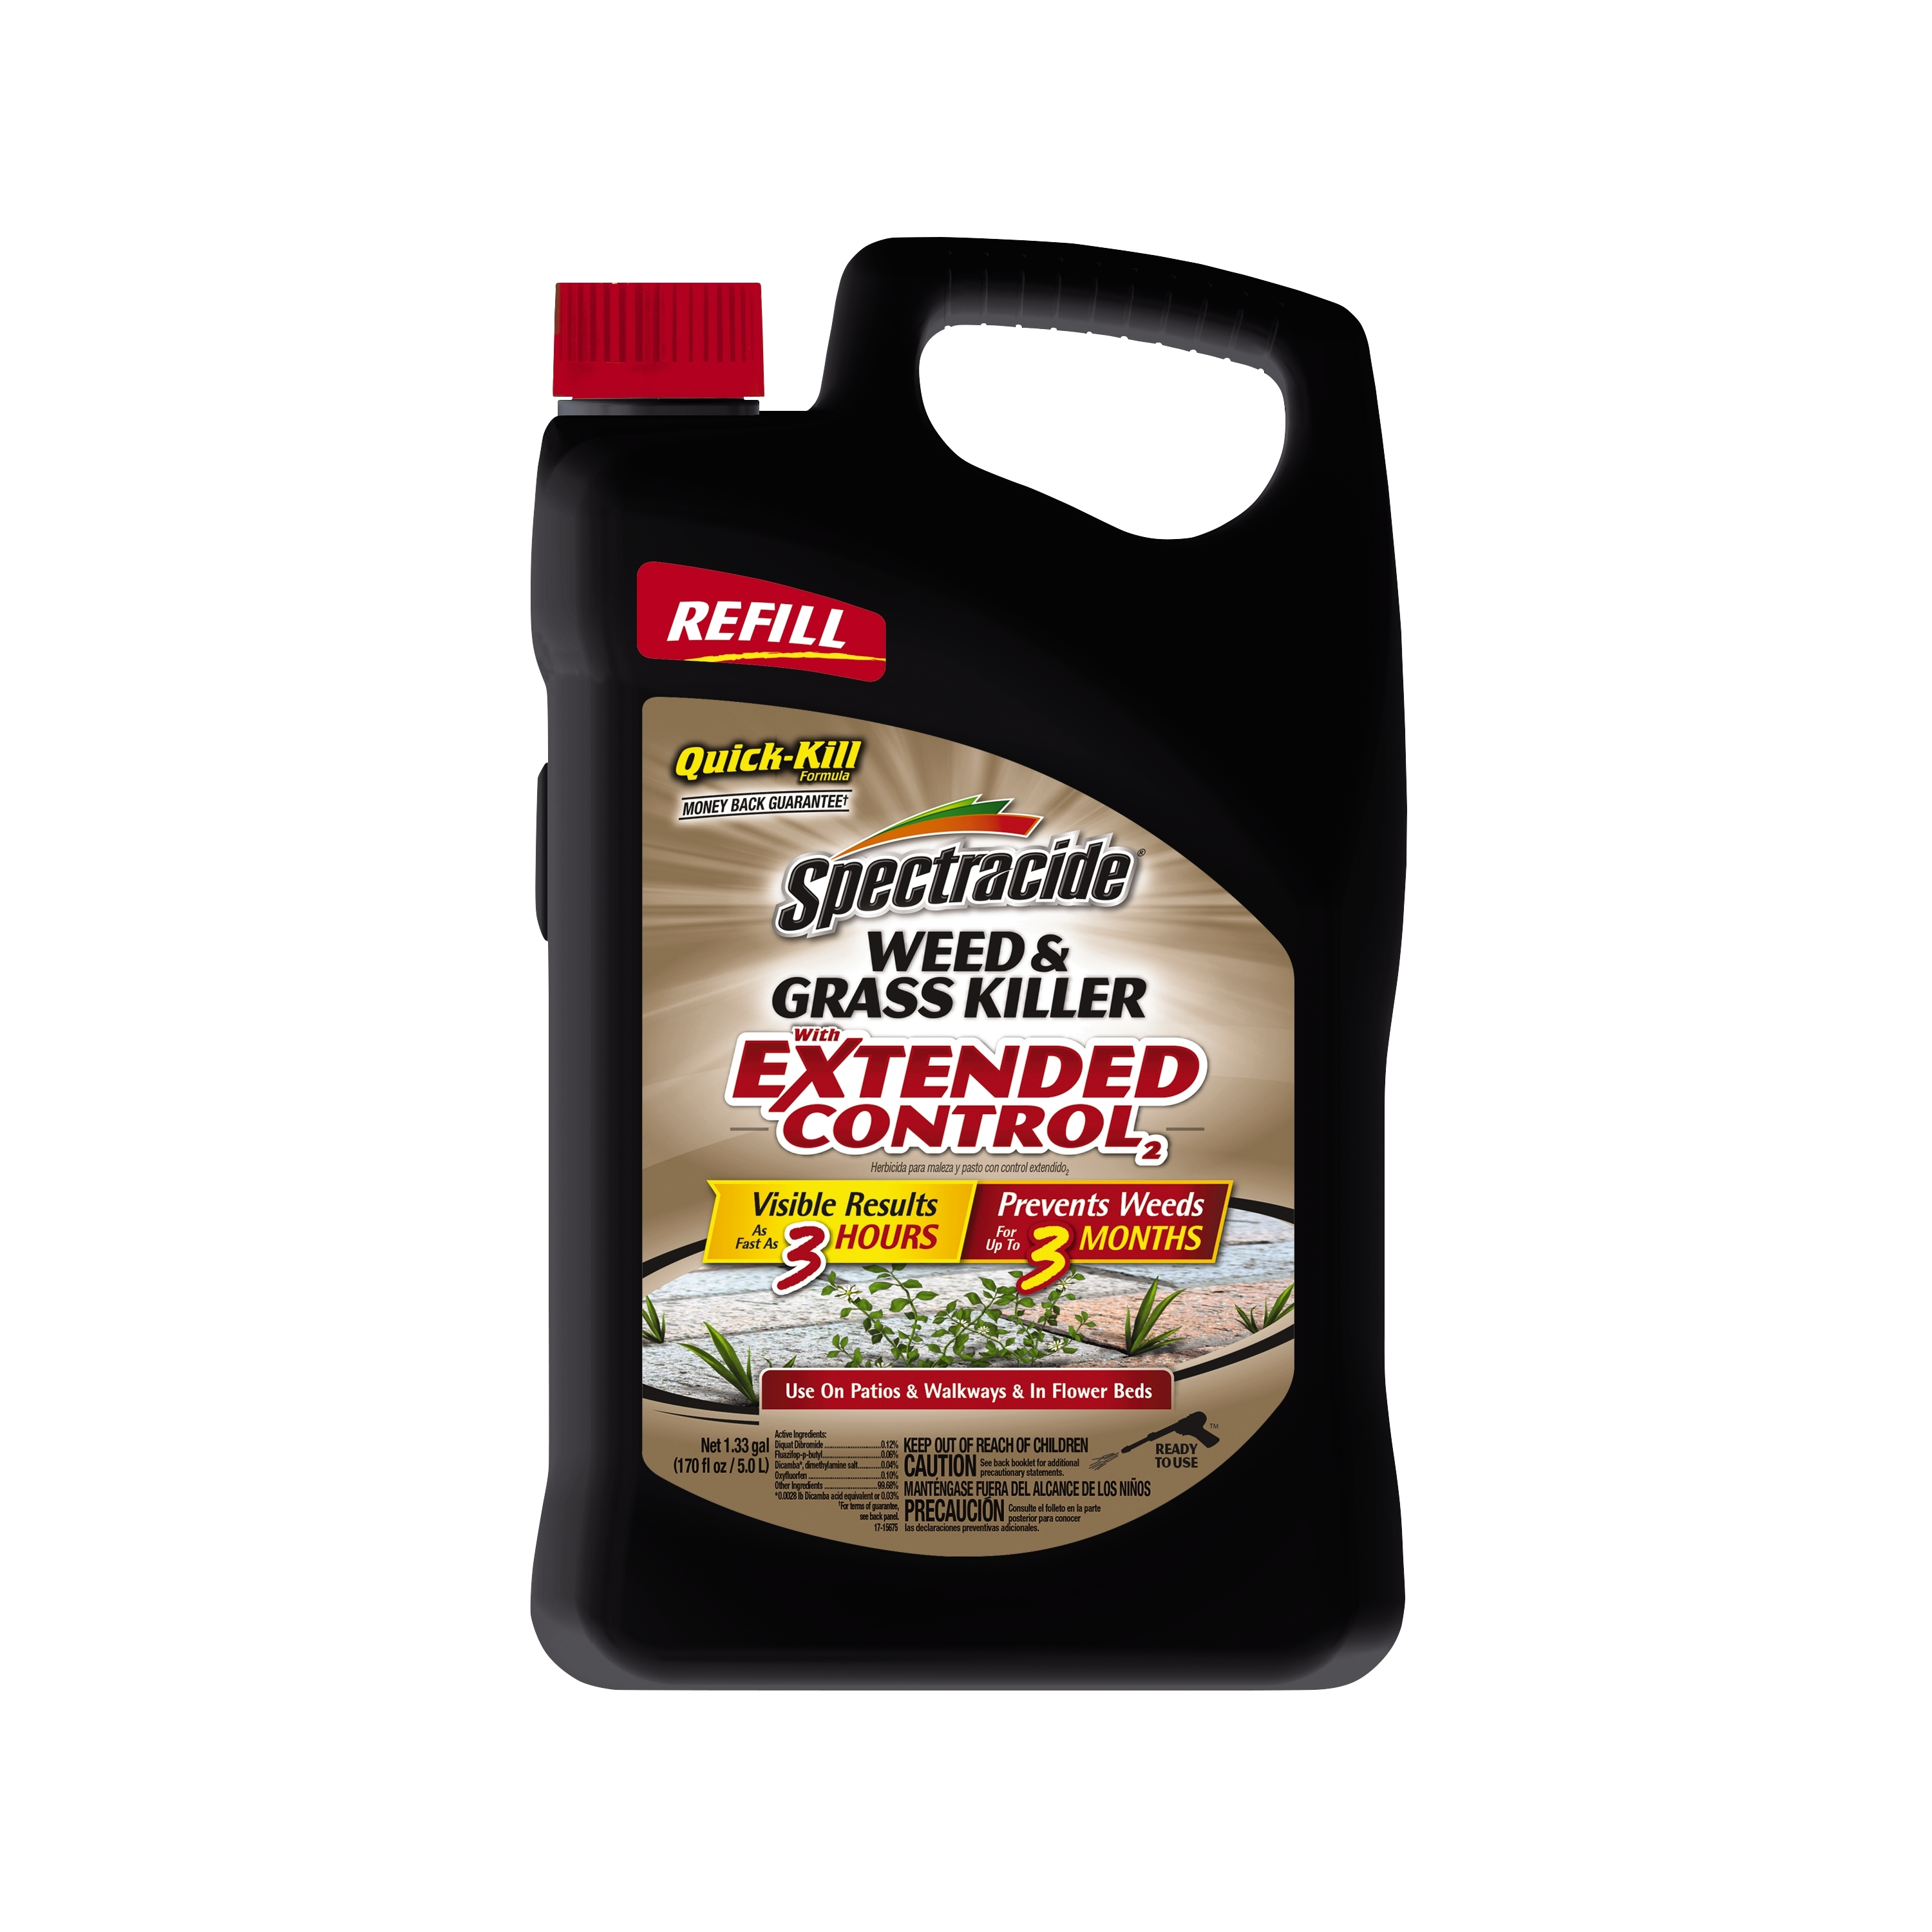 Spectracide Weed & Grass Killer w/ Extended Control, Refill, 1.33 G